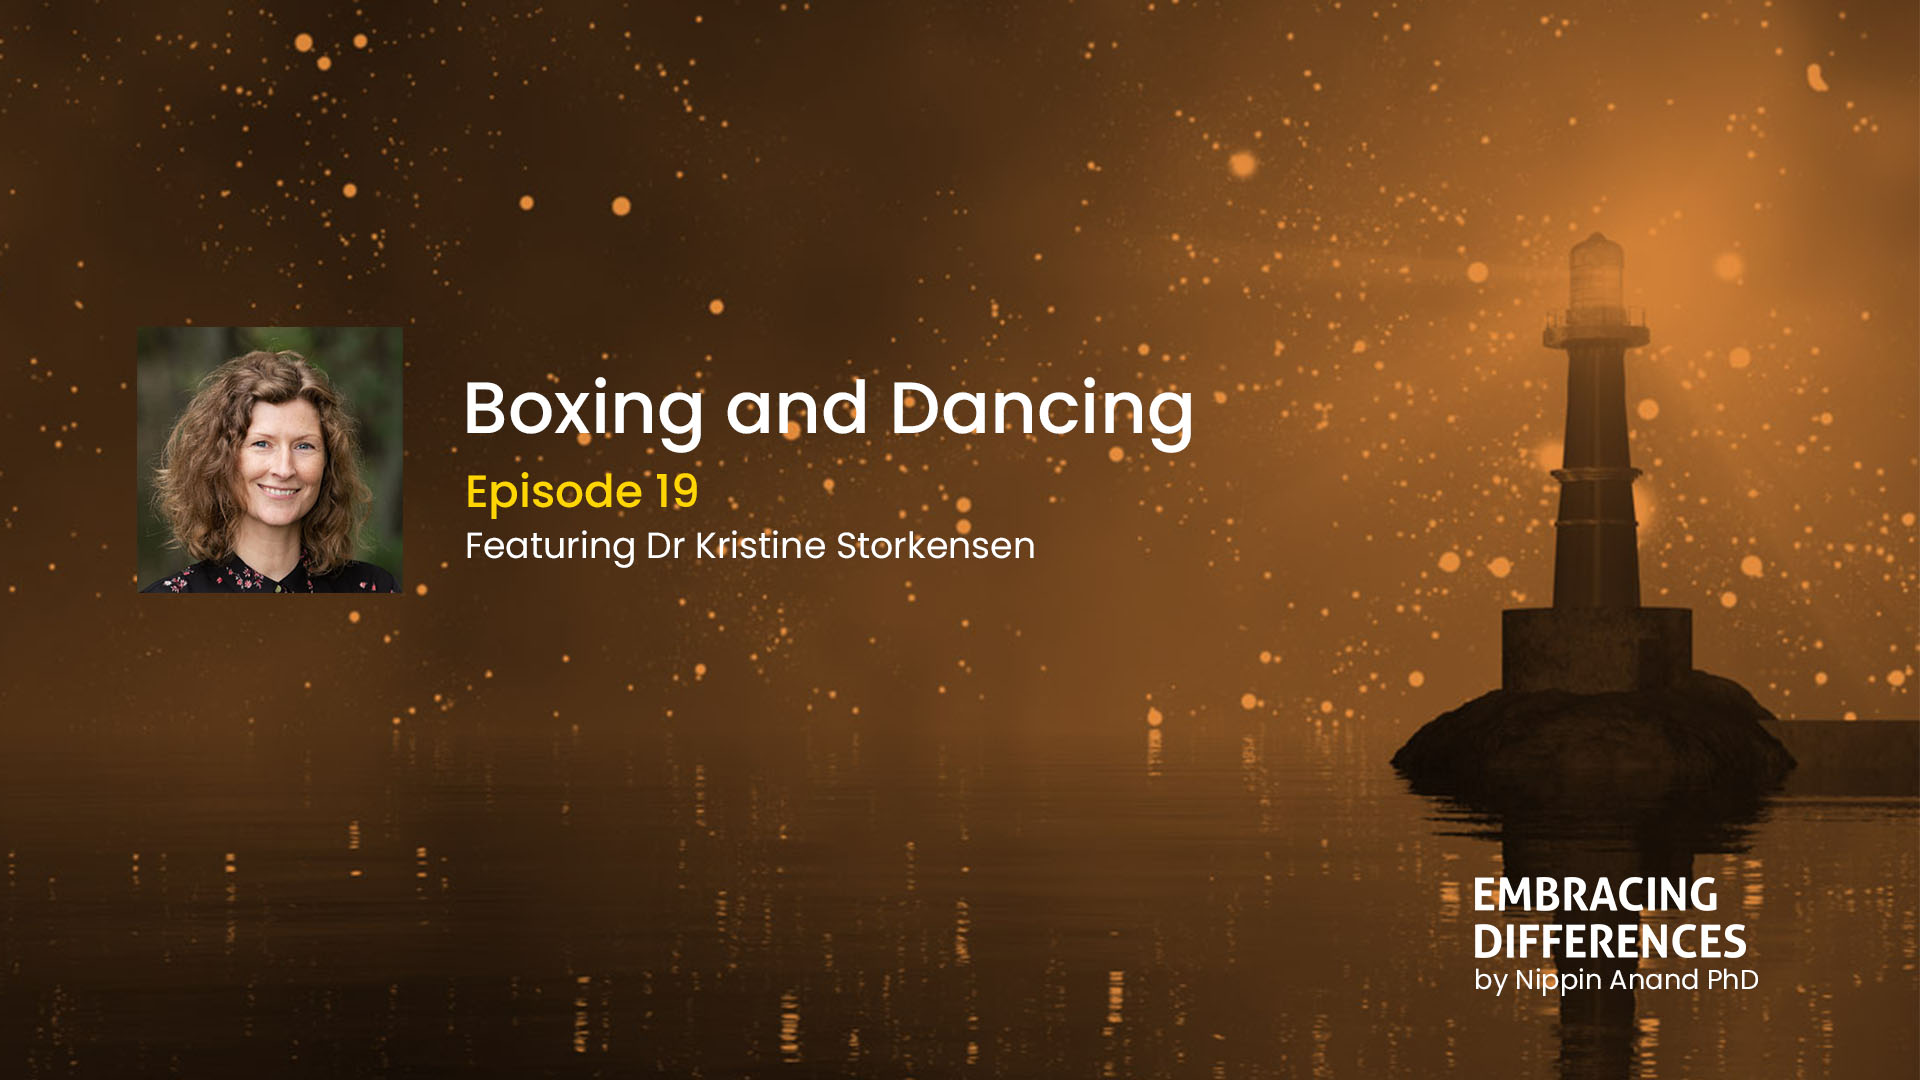 Boxing and Dancing